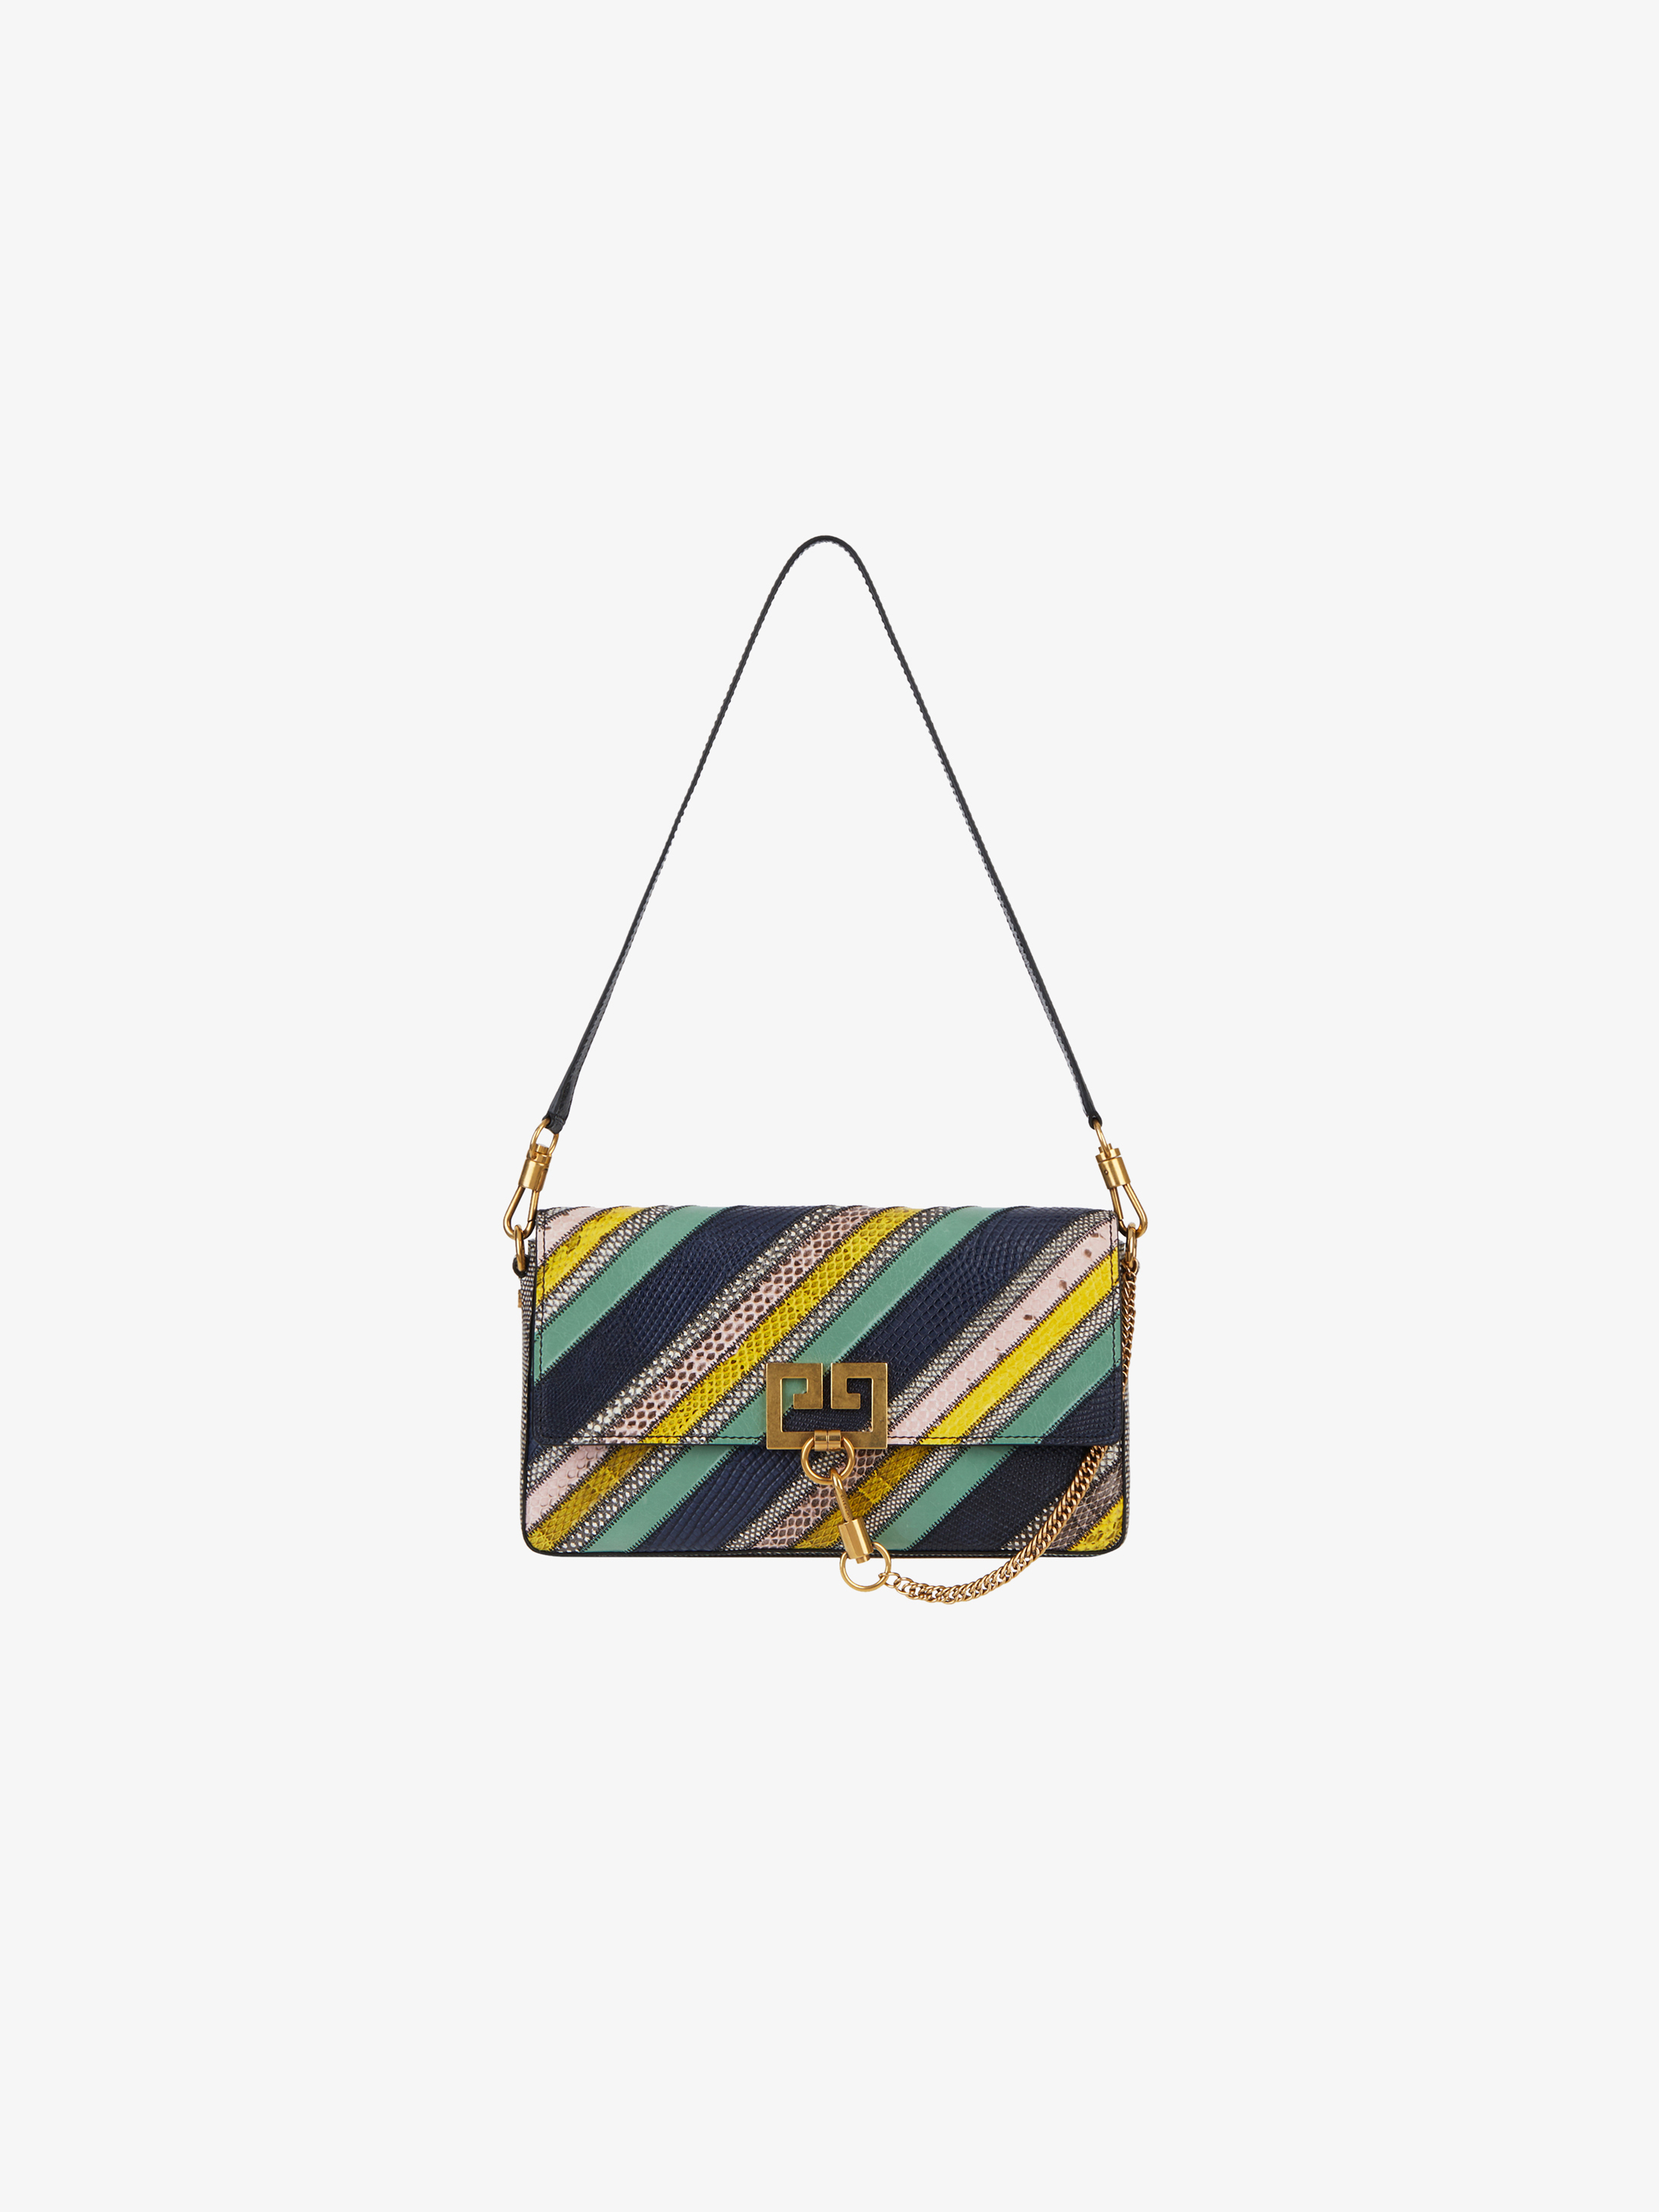 Multicolored patchwork Charm bag in exotic skins